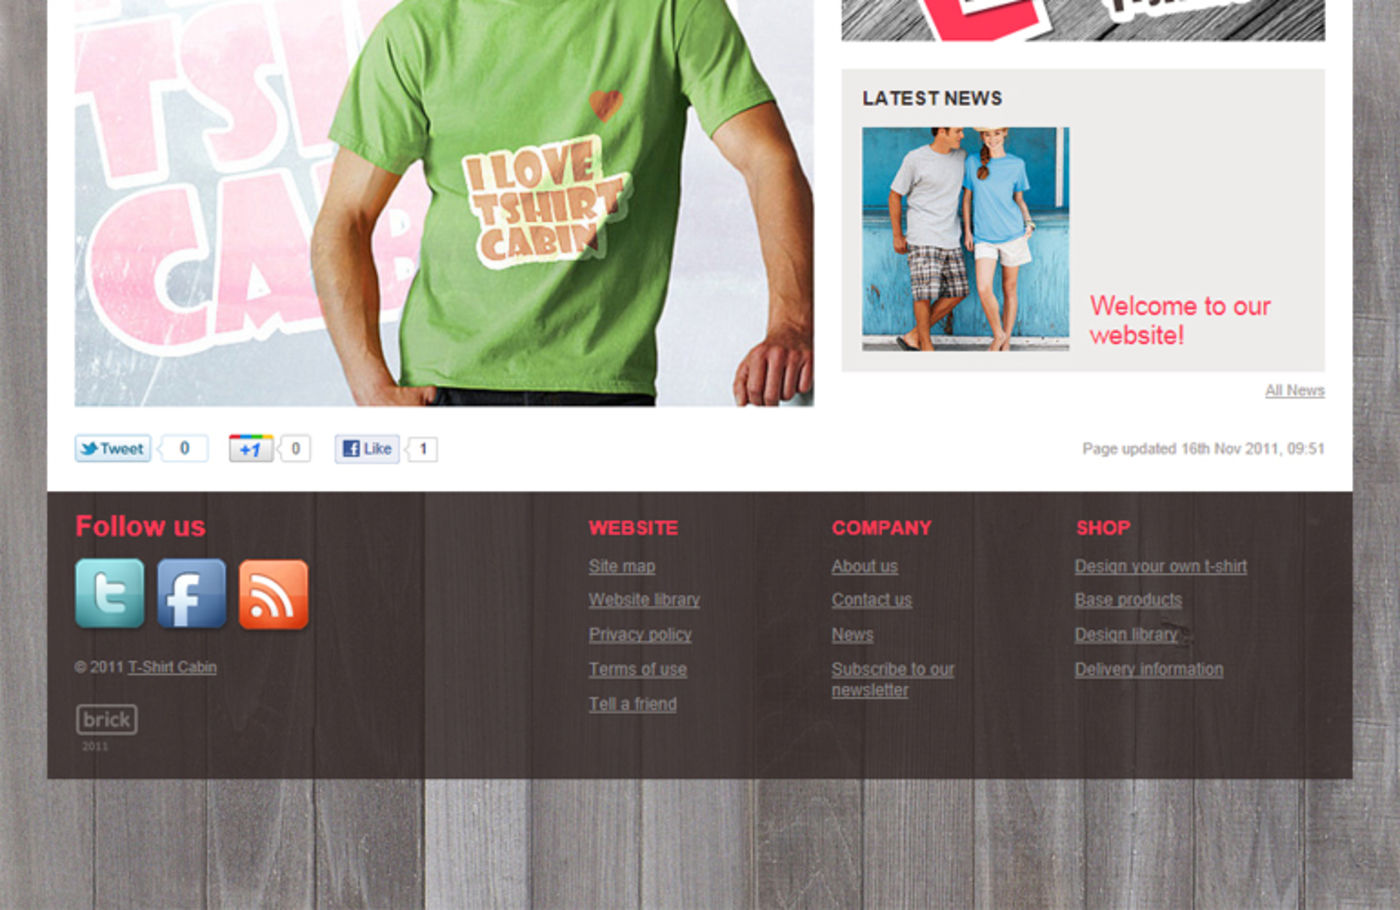 T-Shirt Cabin Homepage footer